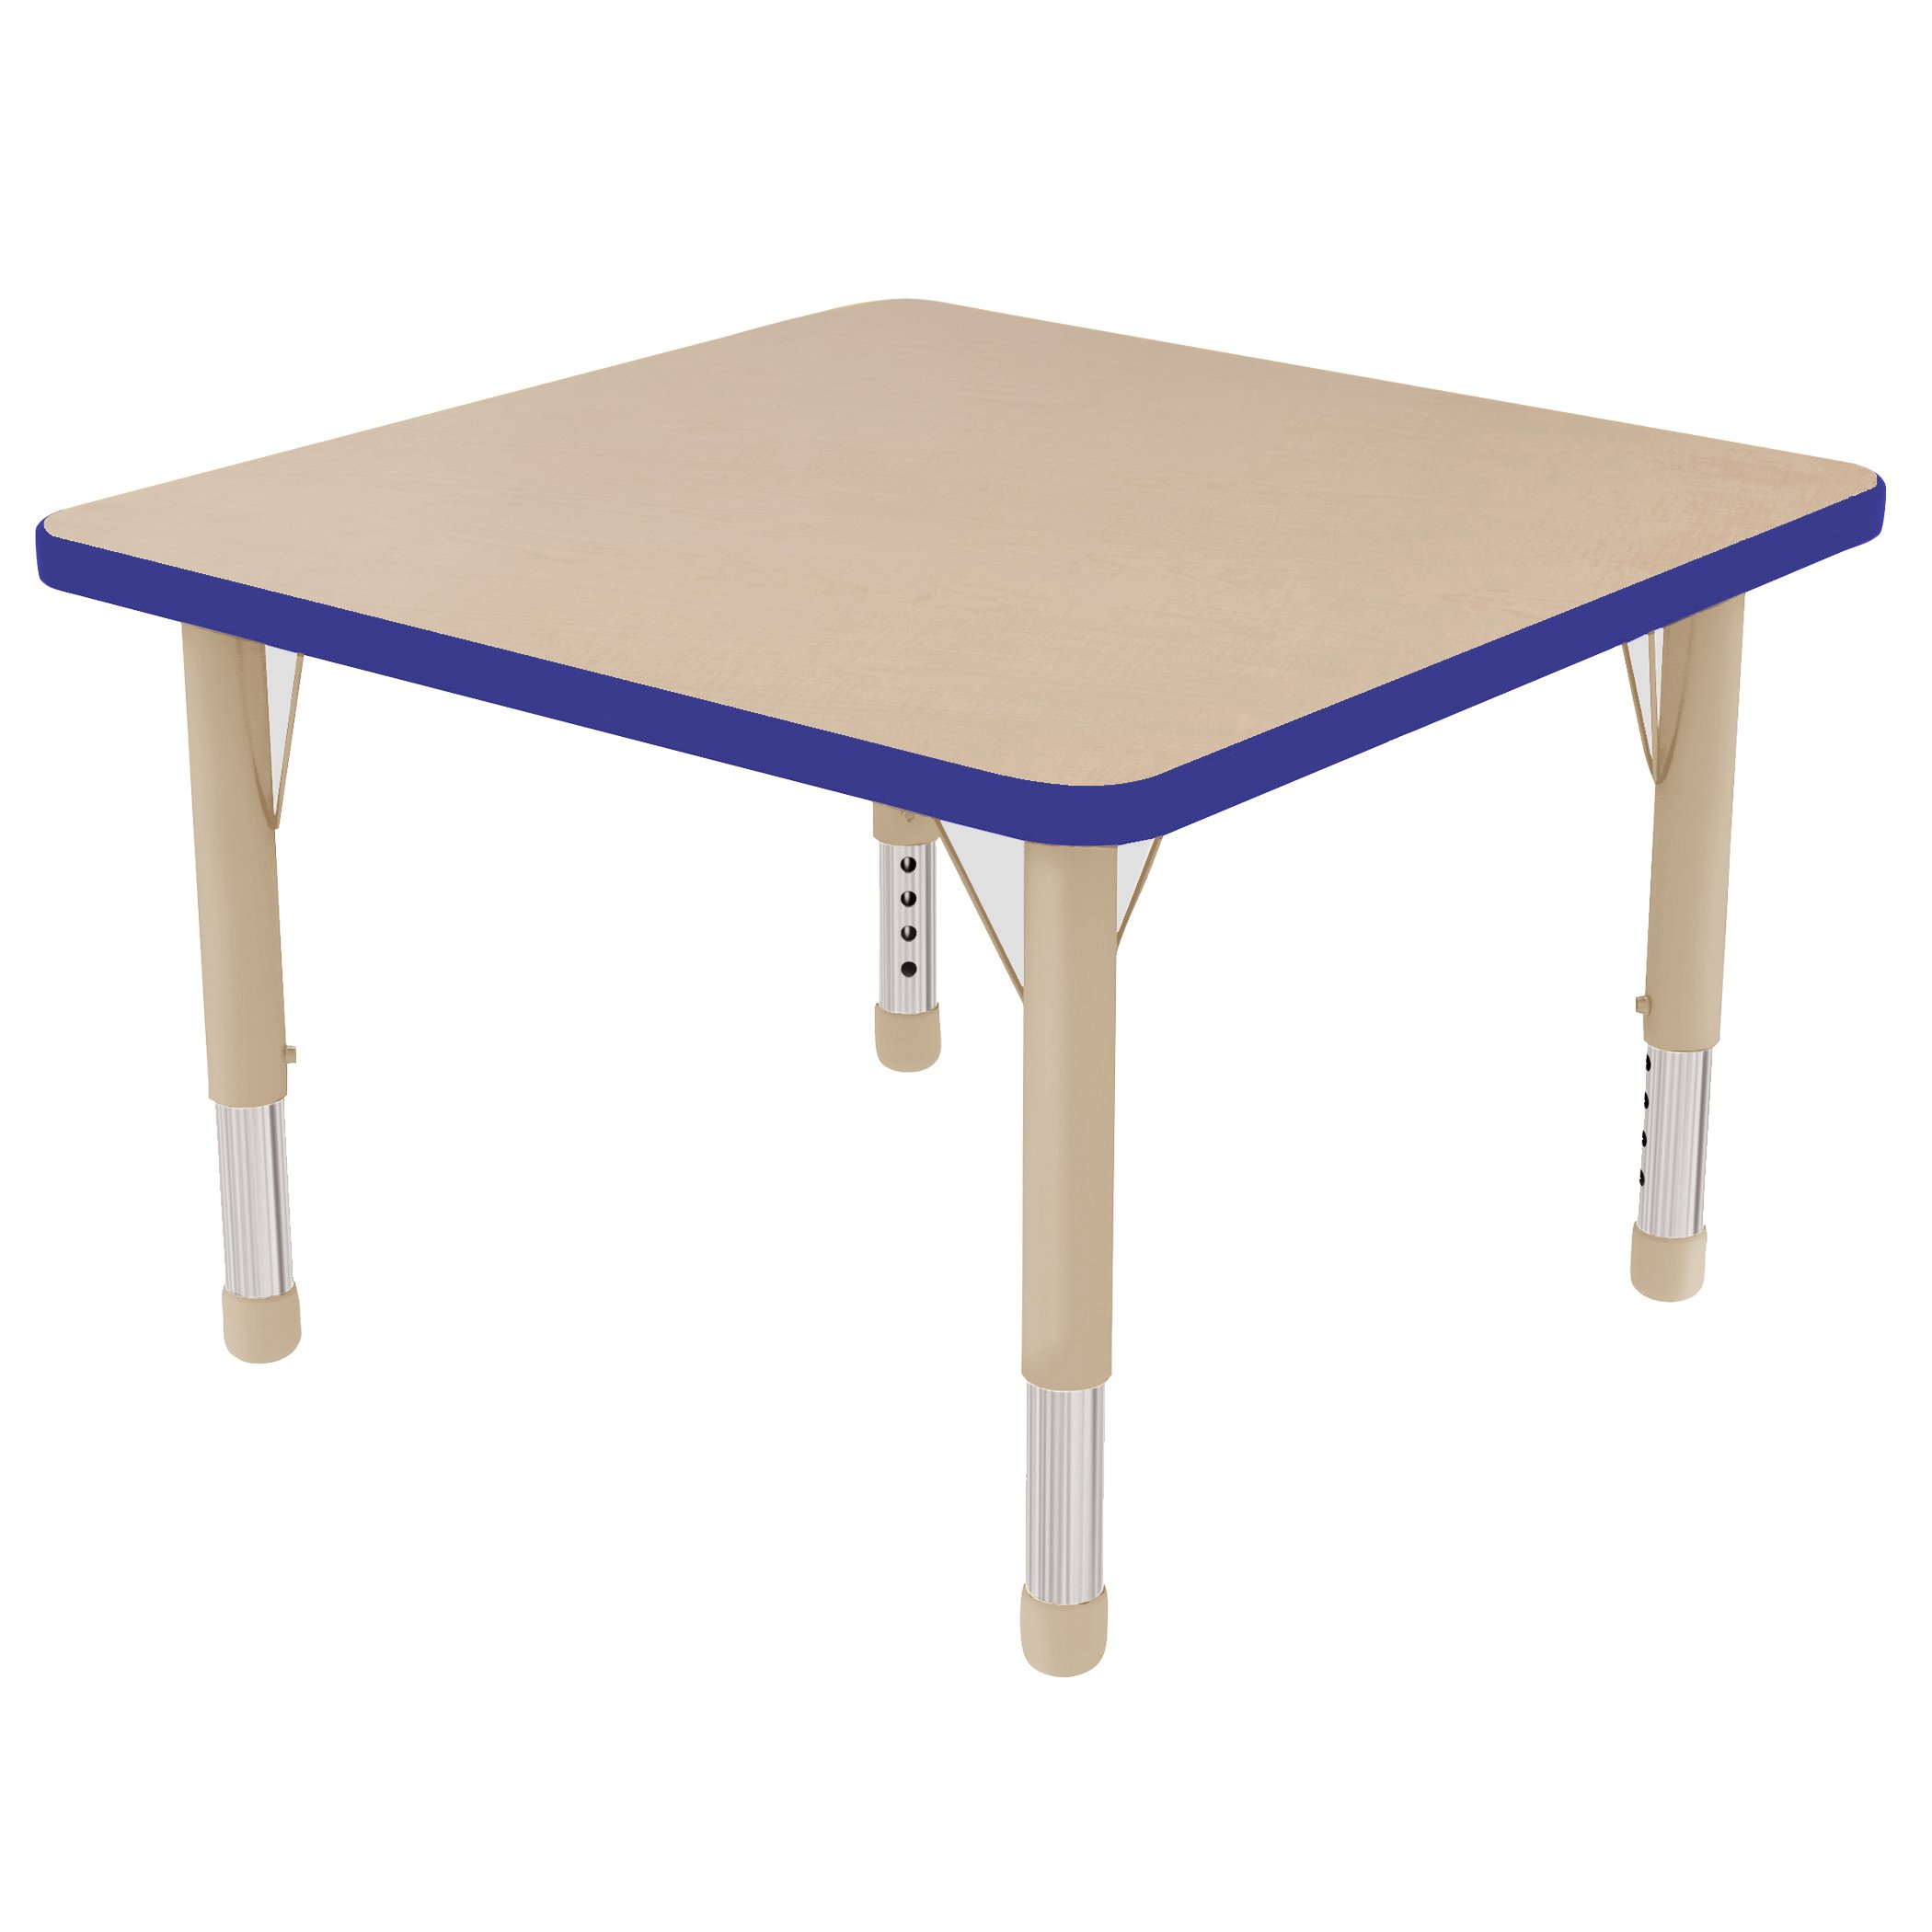 ECR4Kids 30'' Square Activity School Table, Chunky Legs, Adjustable Height 15-24 inch (Maple/Navy)